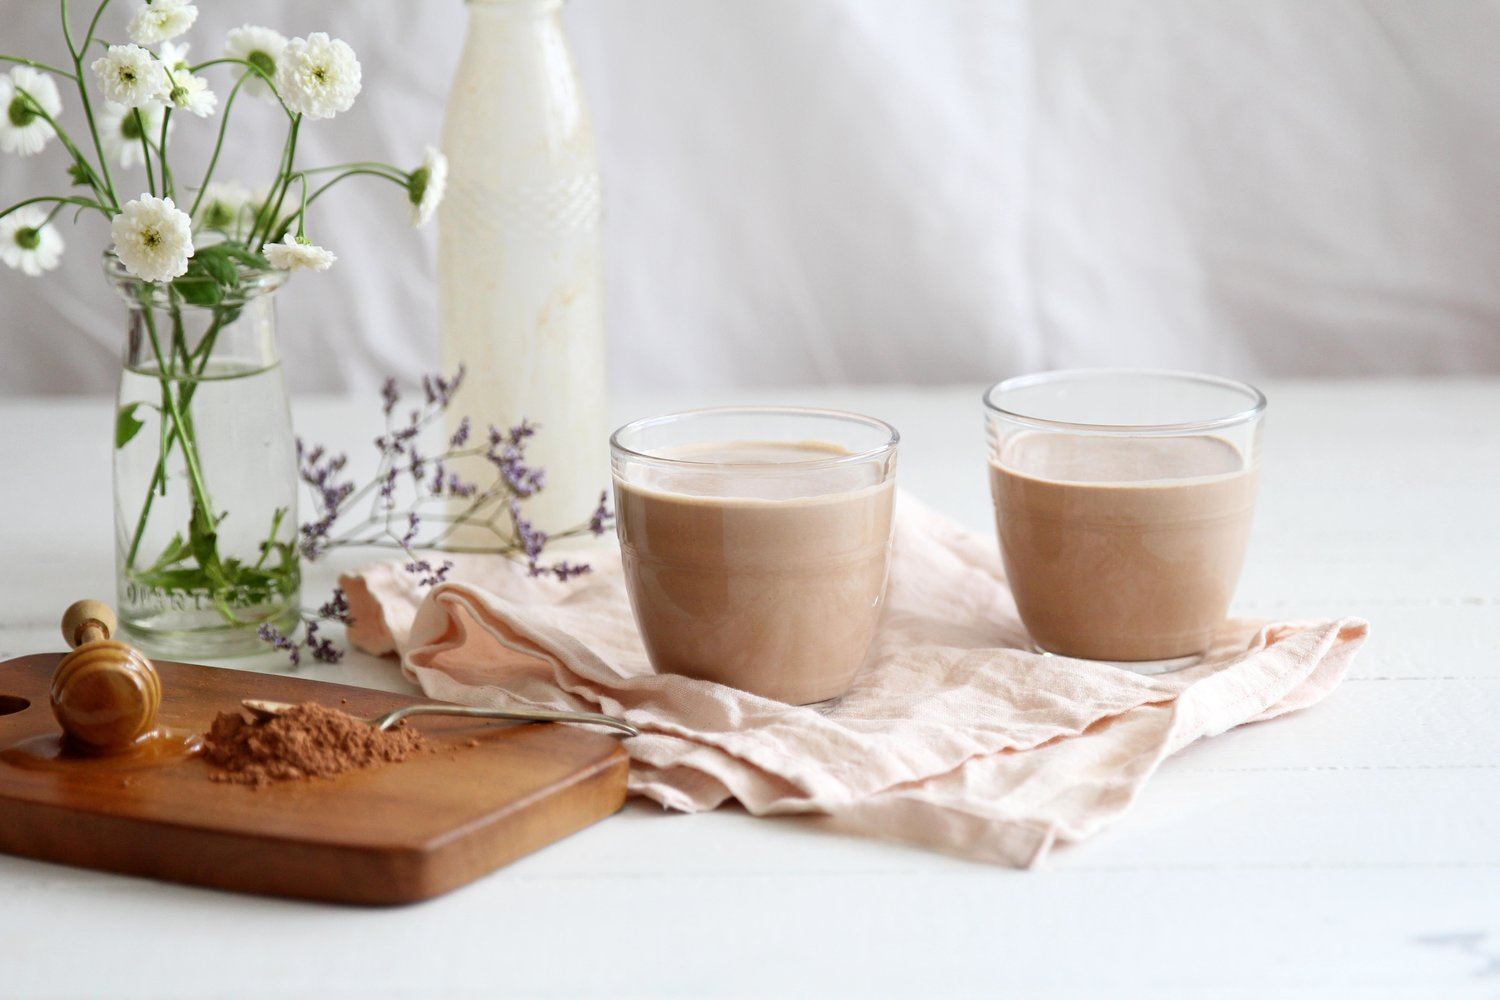 Honey, Cacao, And pumpkin Seed 'Milk' -